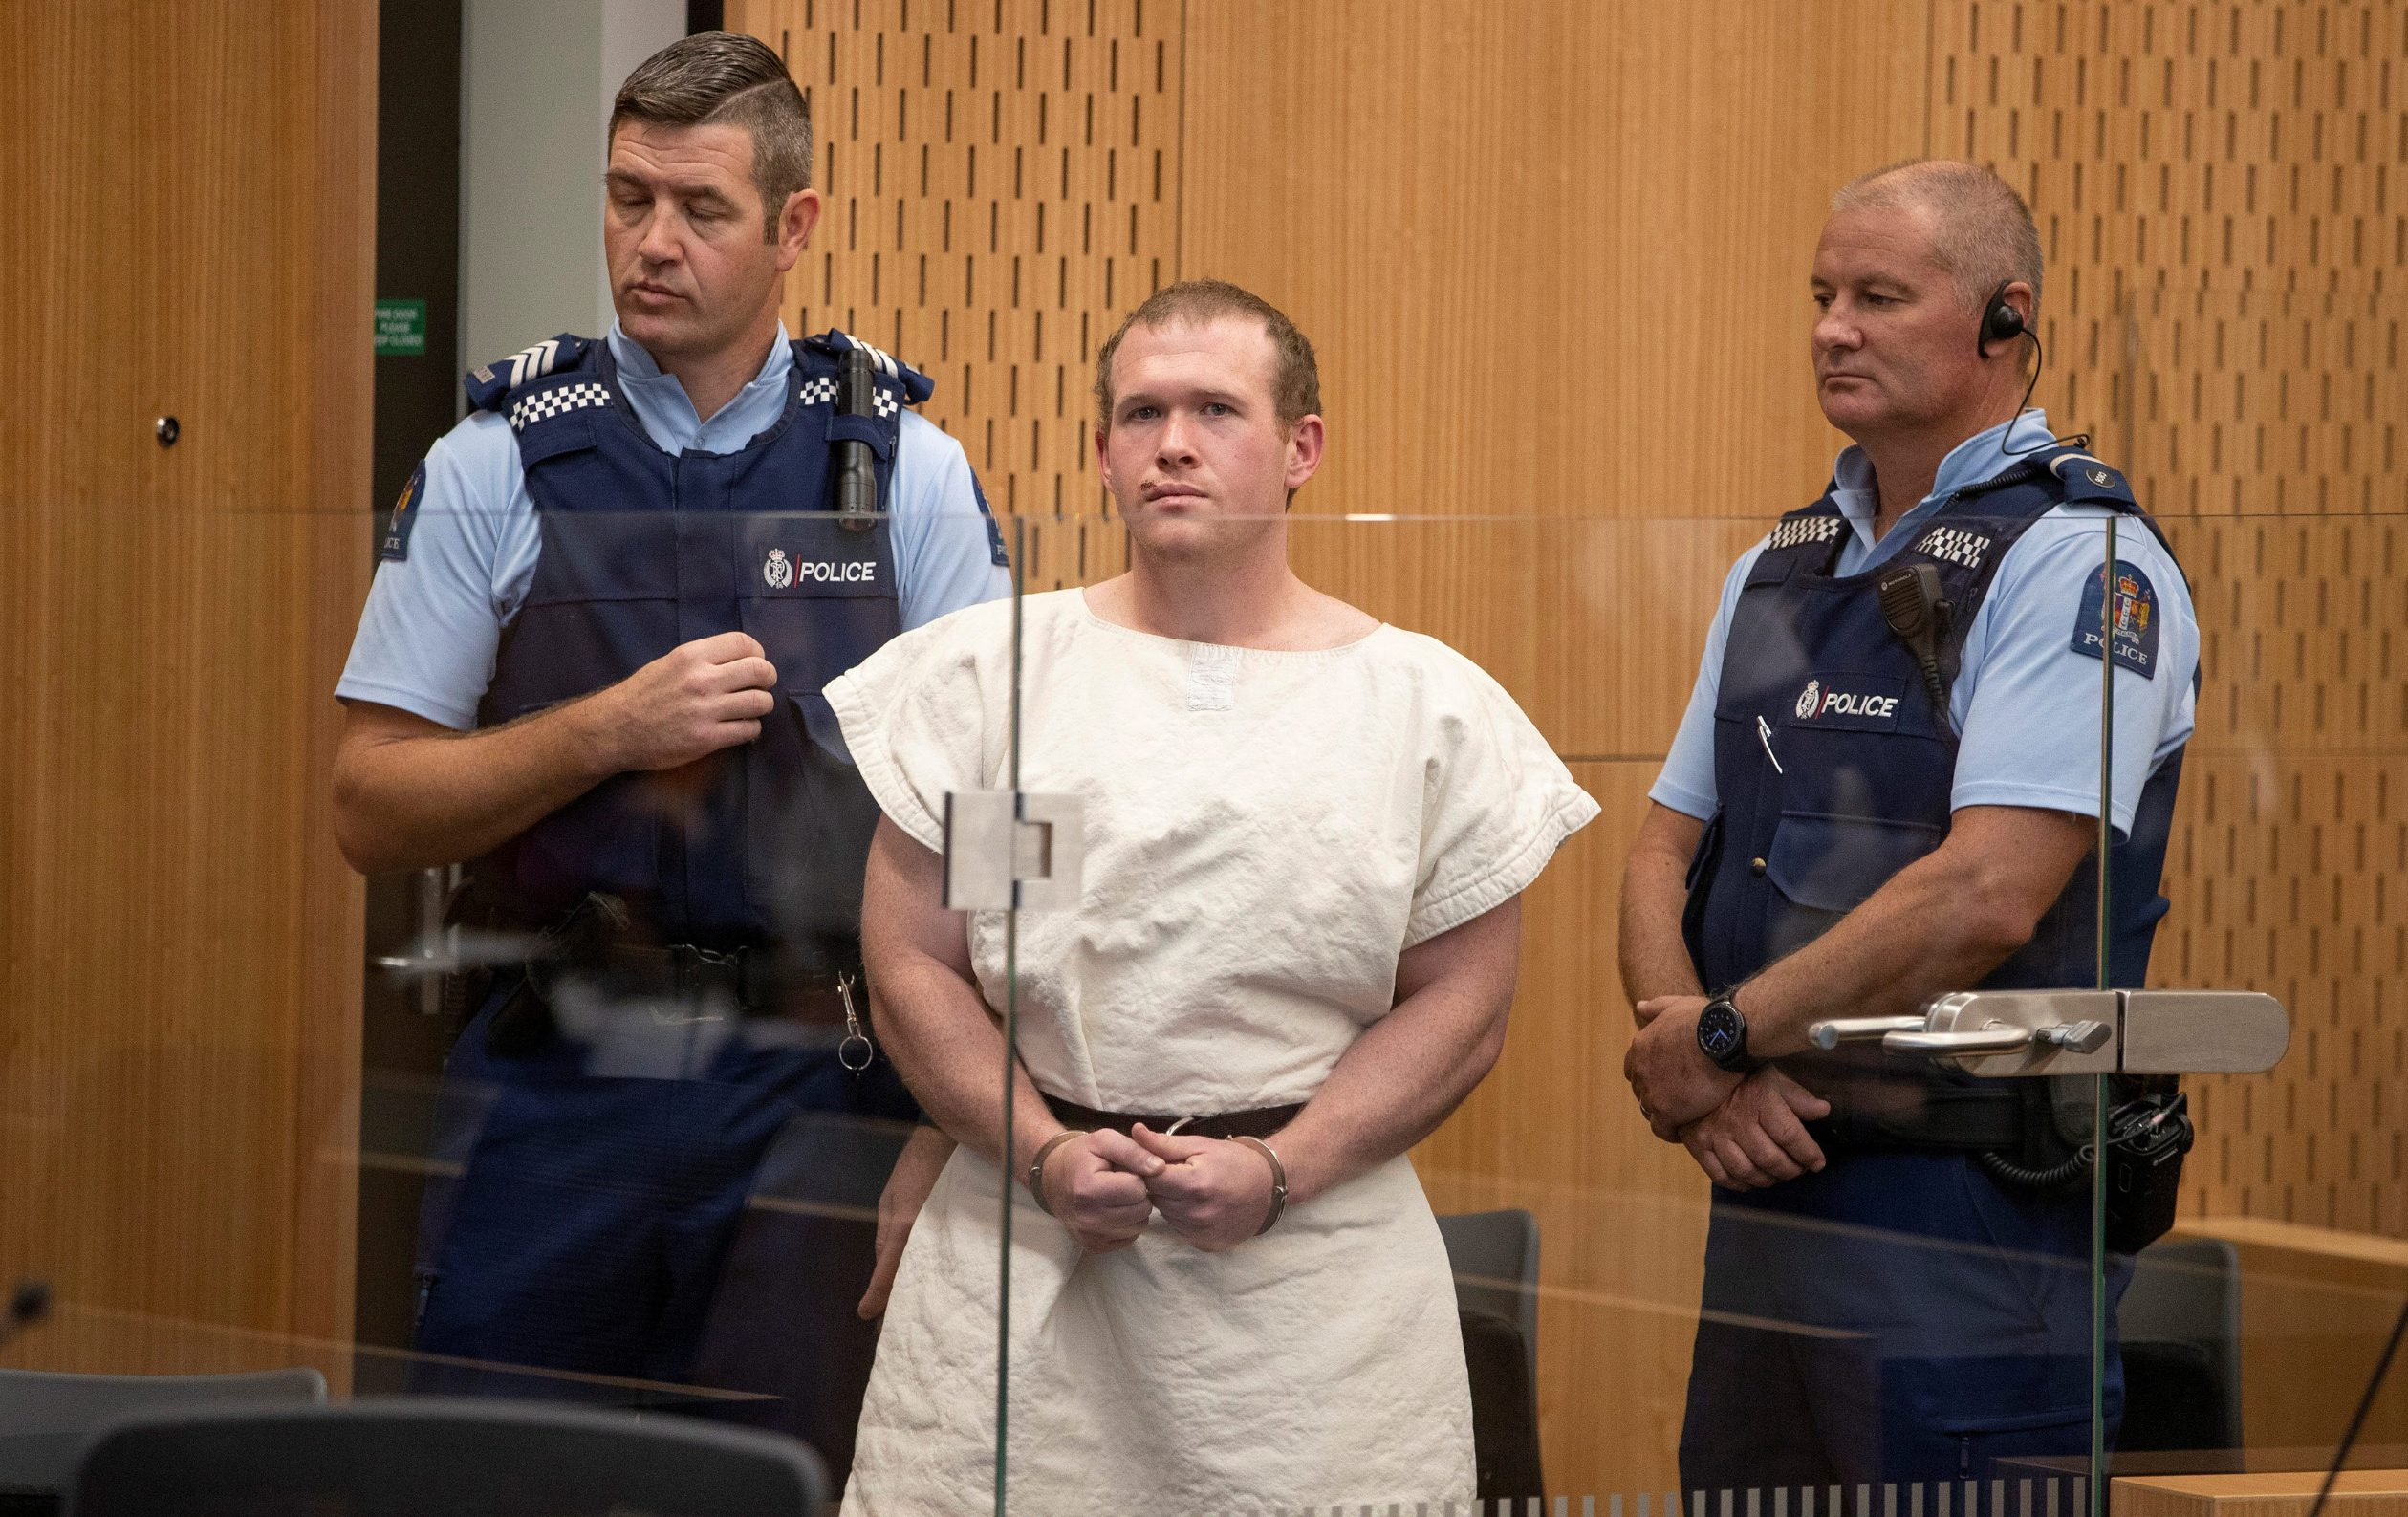 FILE PHOTO: Brenton Tarrant, charged for murder in relation to the mosque attacks, is seen in the dock during his appearance in the Christchurch District Court, New Zealand March 16, 2019. Mark Mitchell/New Zealand Herald/Pool via REUTERS/File Photo